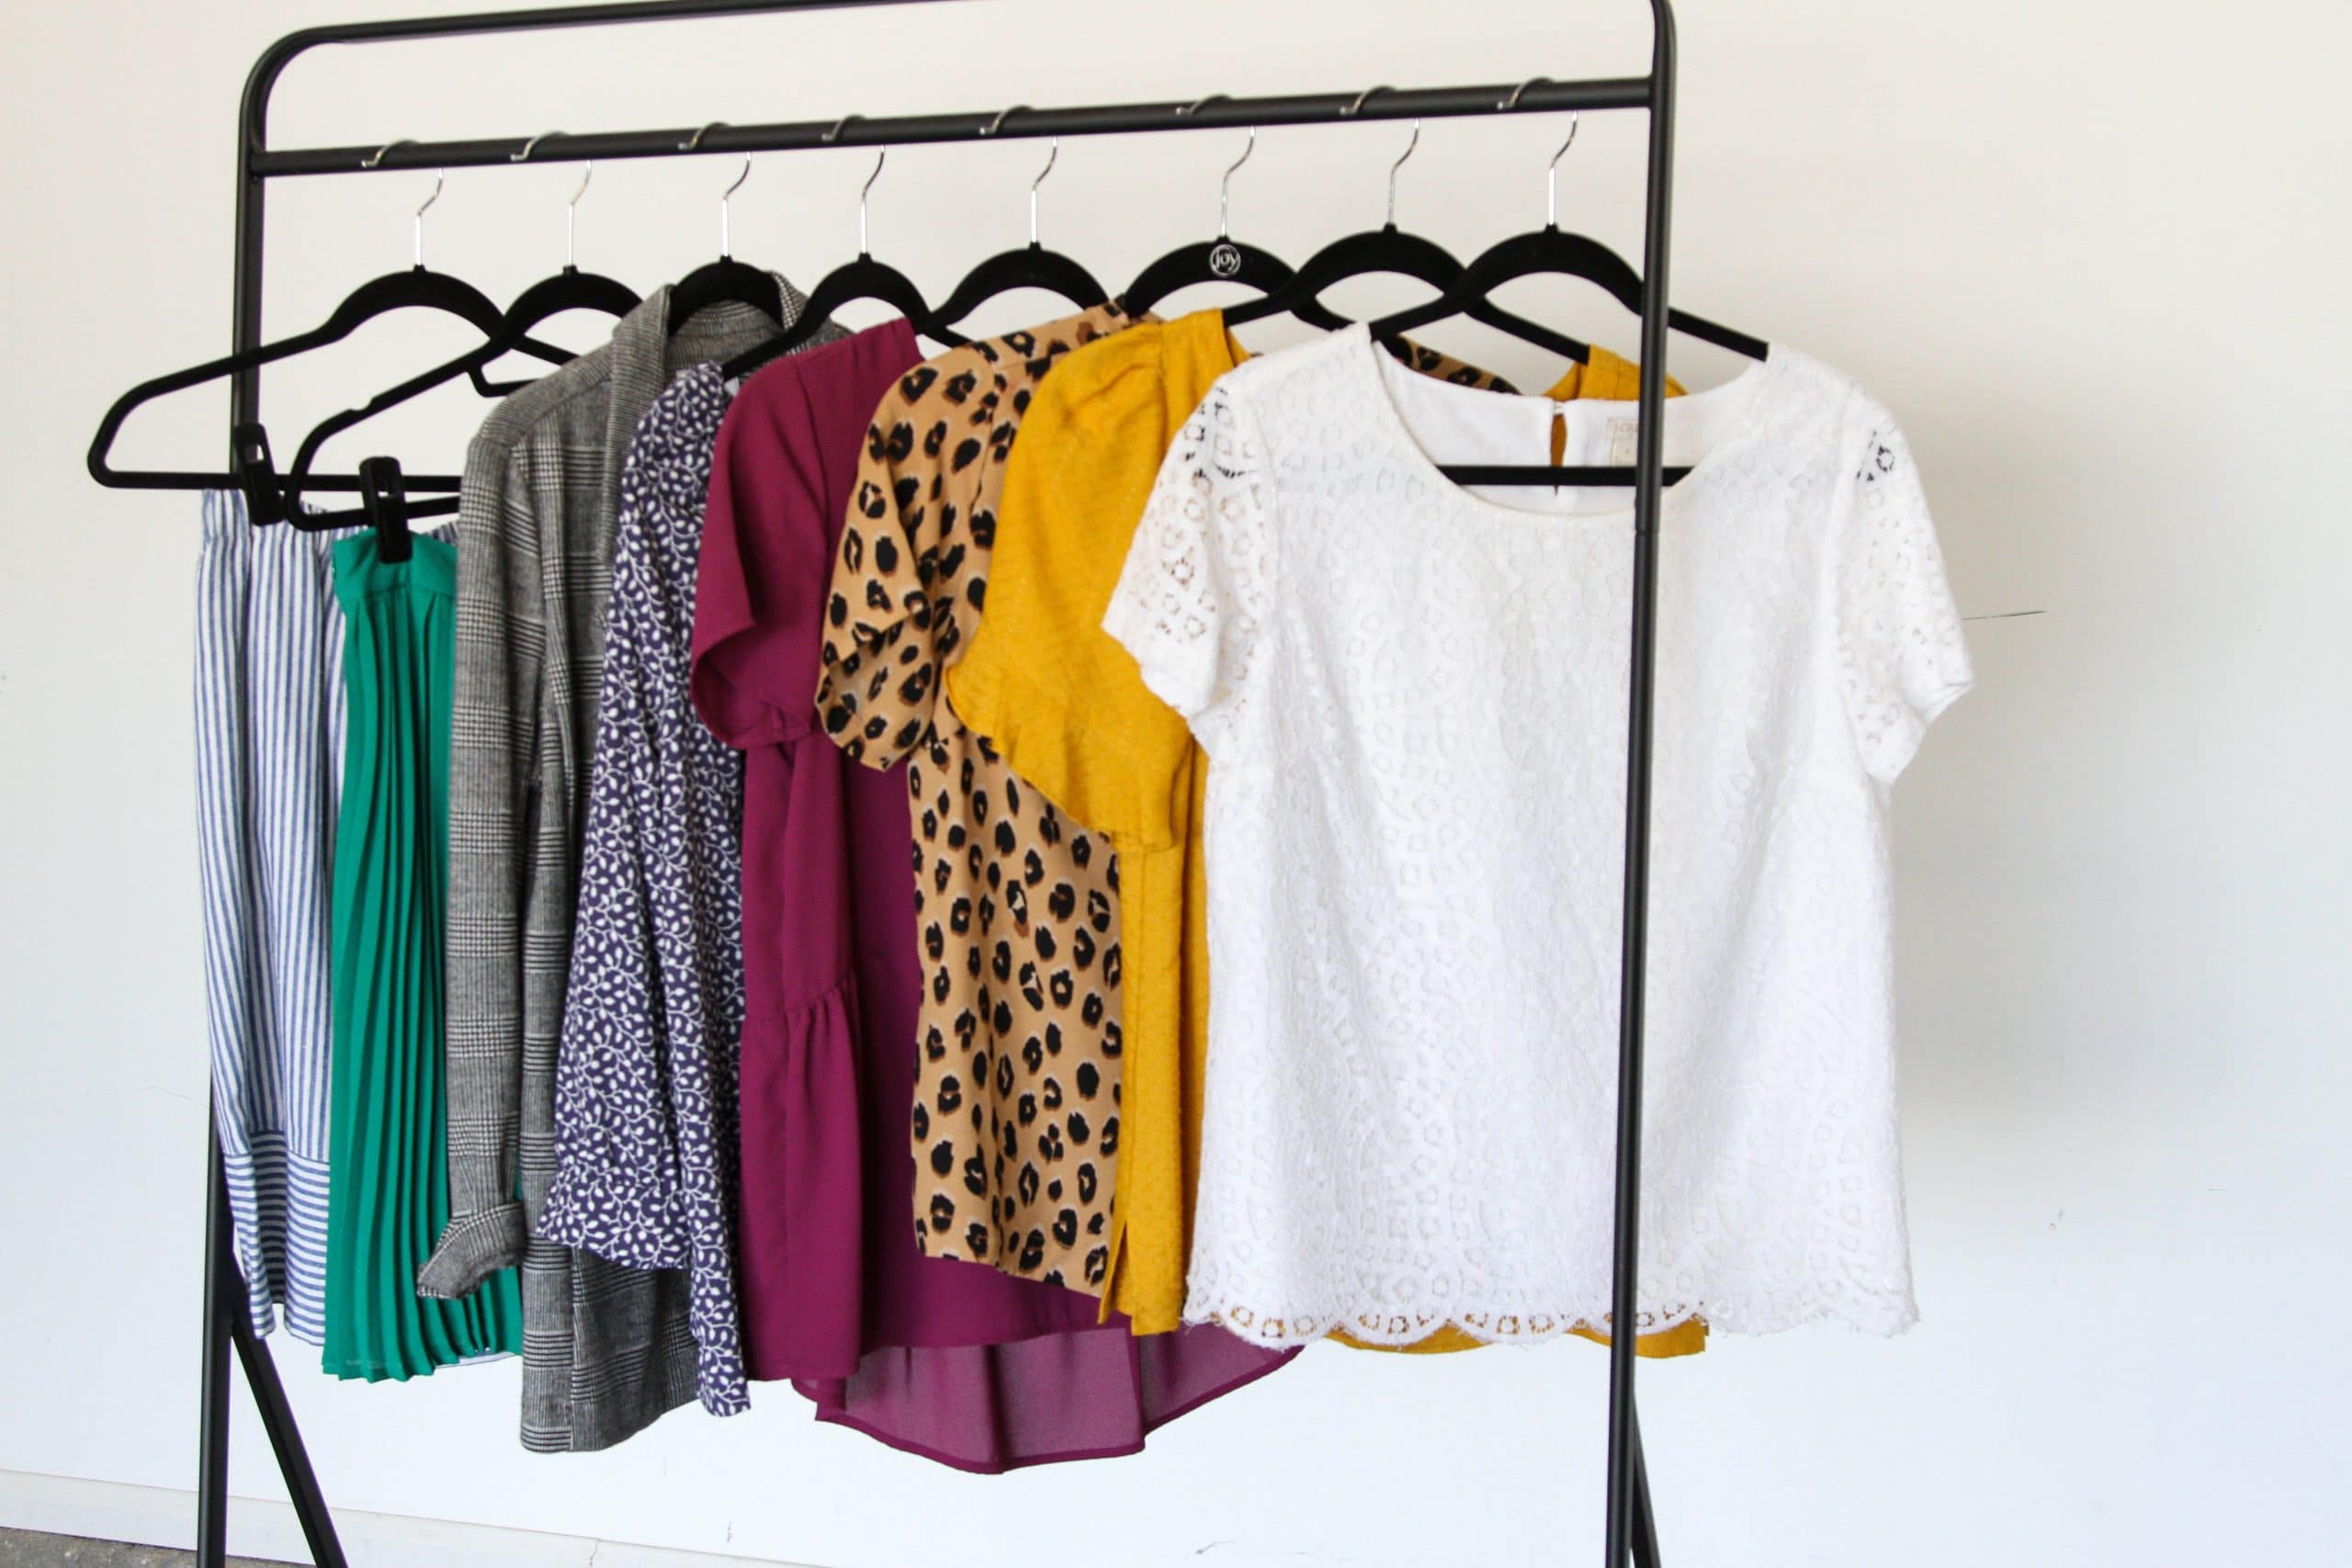 5 Reasons You Might Have a Closet Full of Clothes but Nothing to Wear